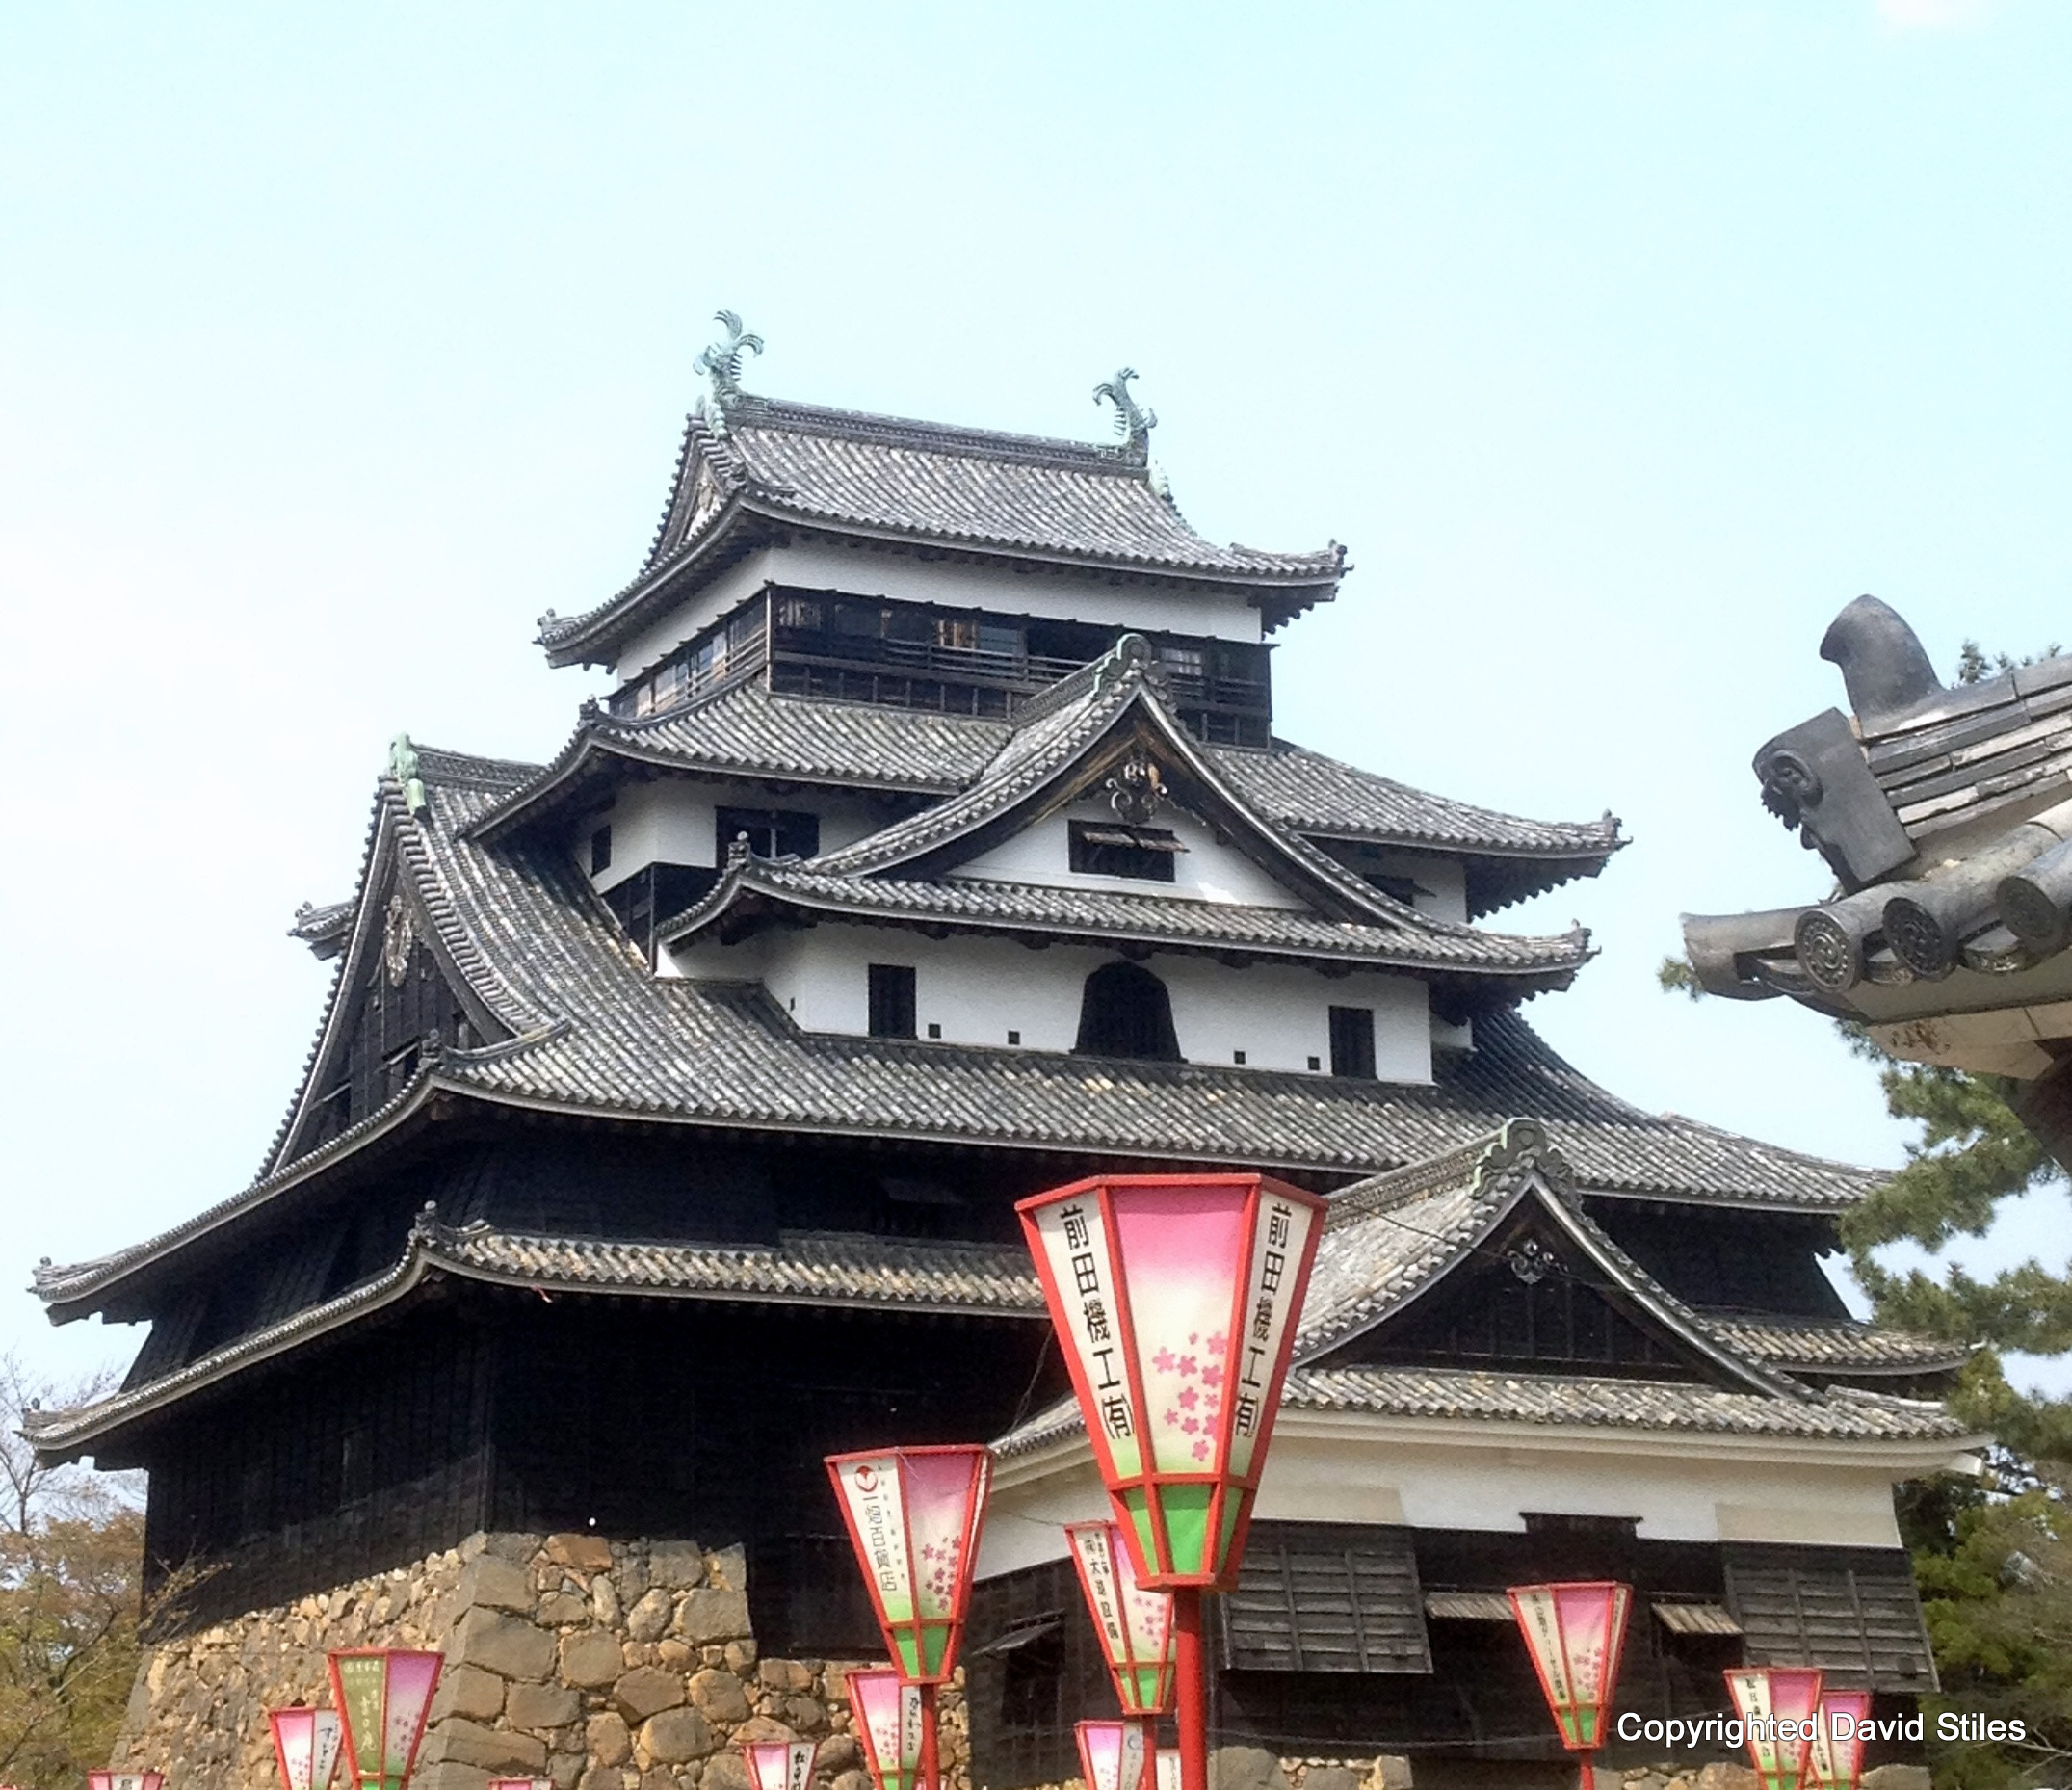 Matsue Castle in Shimane Prefecture